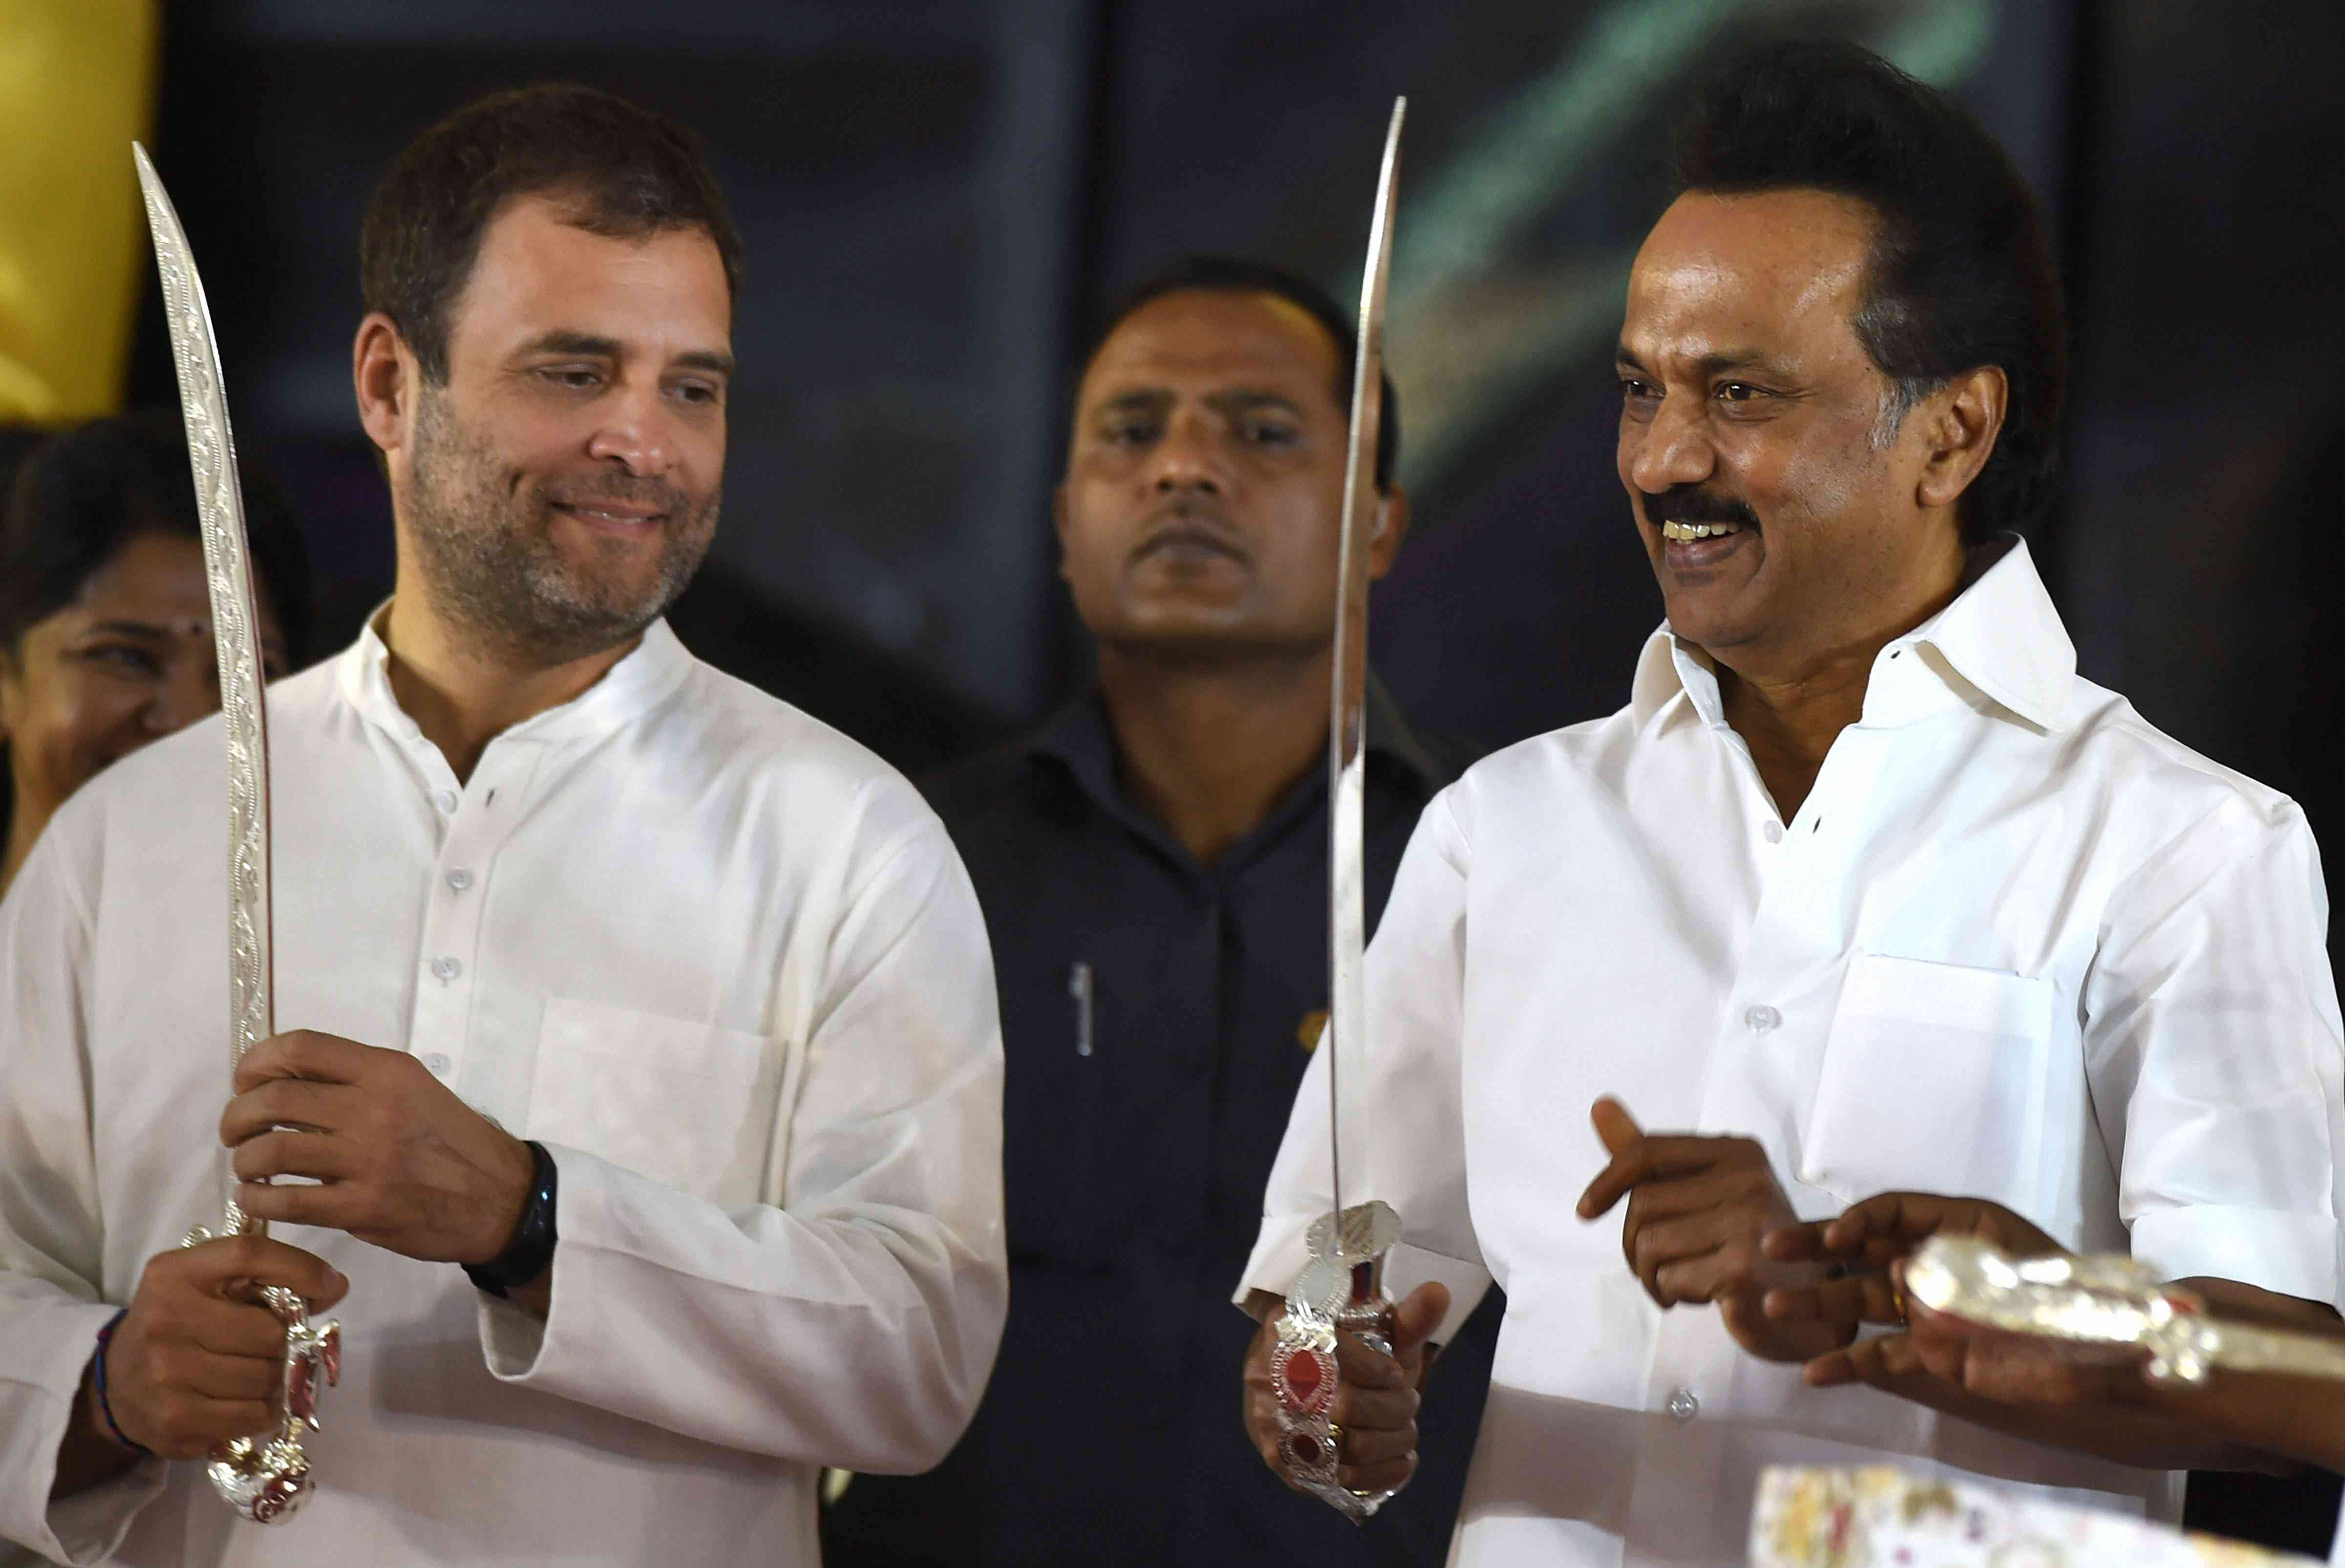 Congress President Rahul Gandhi and Dravida Munnetra Kazhagam chief MK Stalin at the unveiling of M Karunanidhi's statue in Chennai in December. The two parties are in talks for an alliance in Tamil Nadu. (Photo credit: PTI).